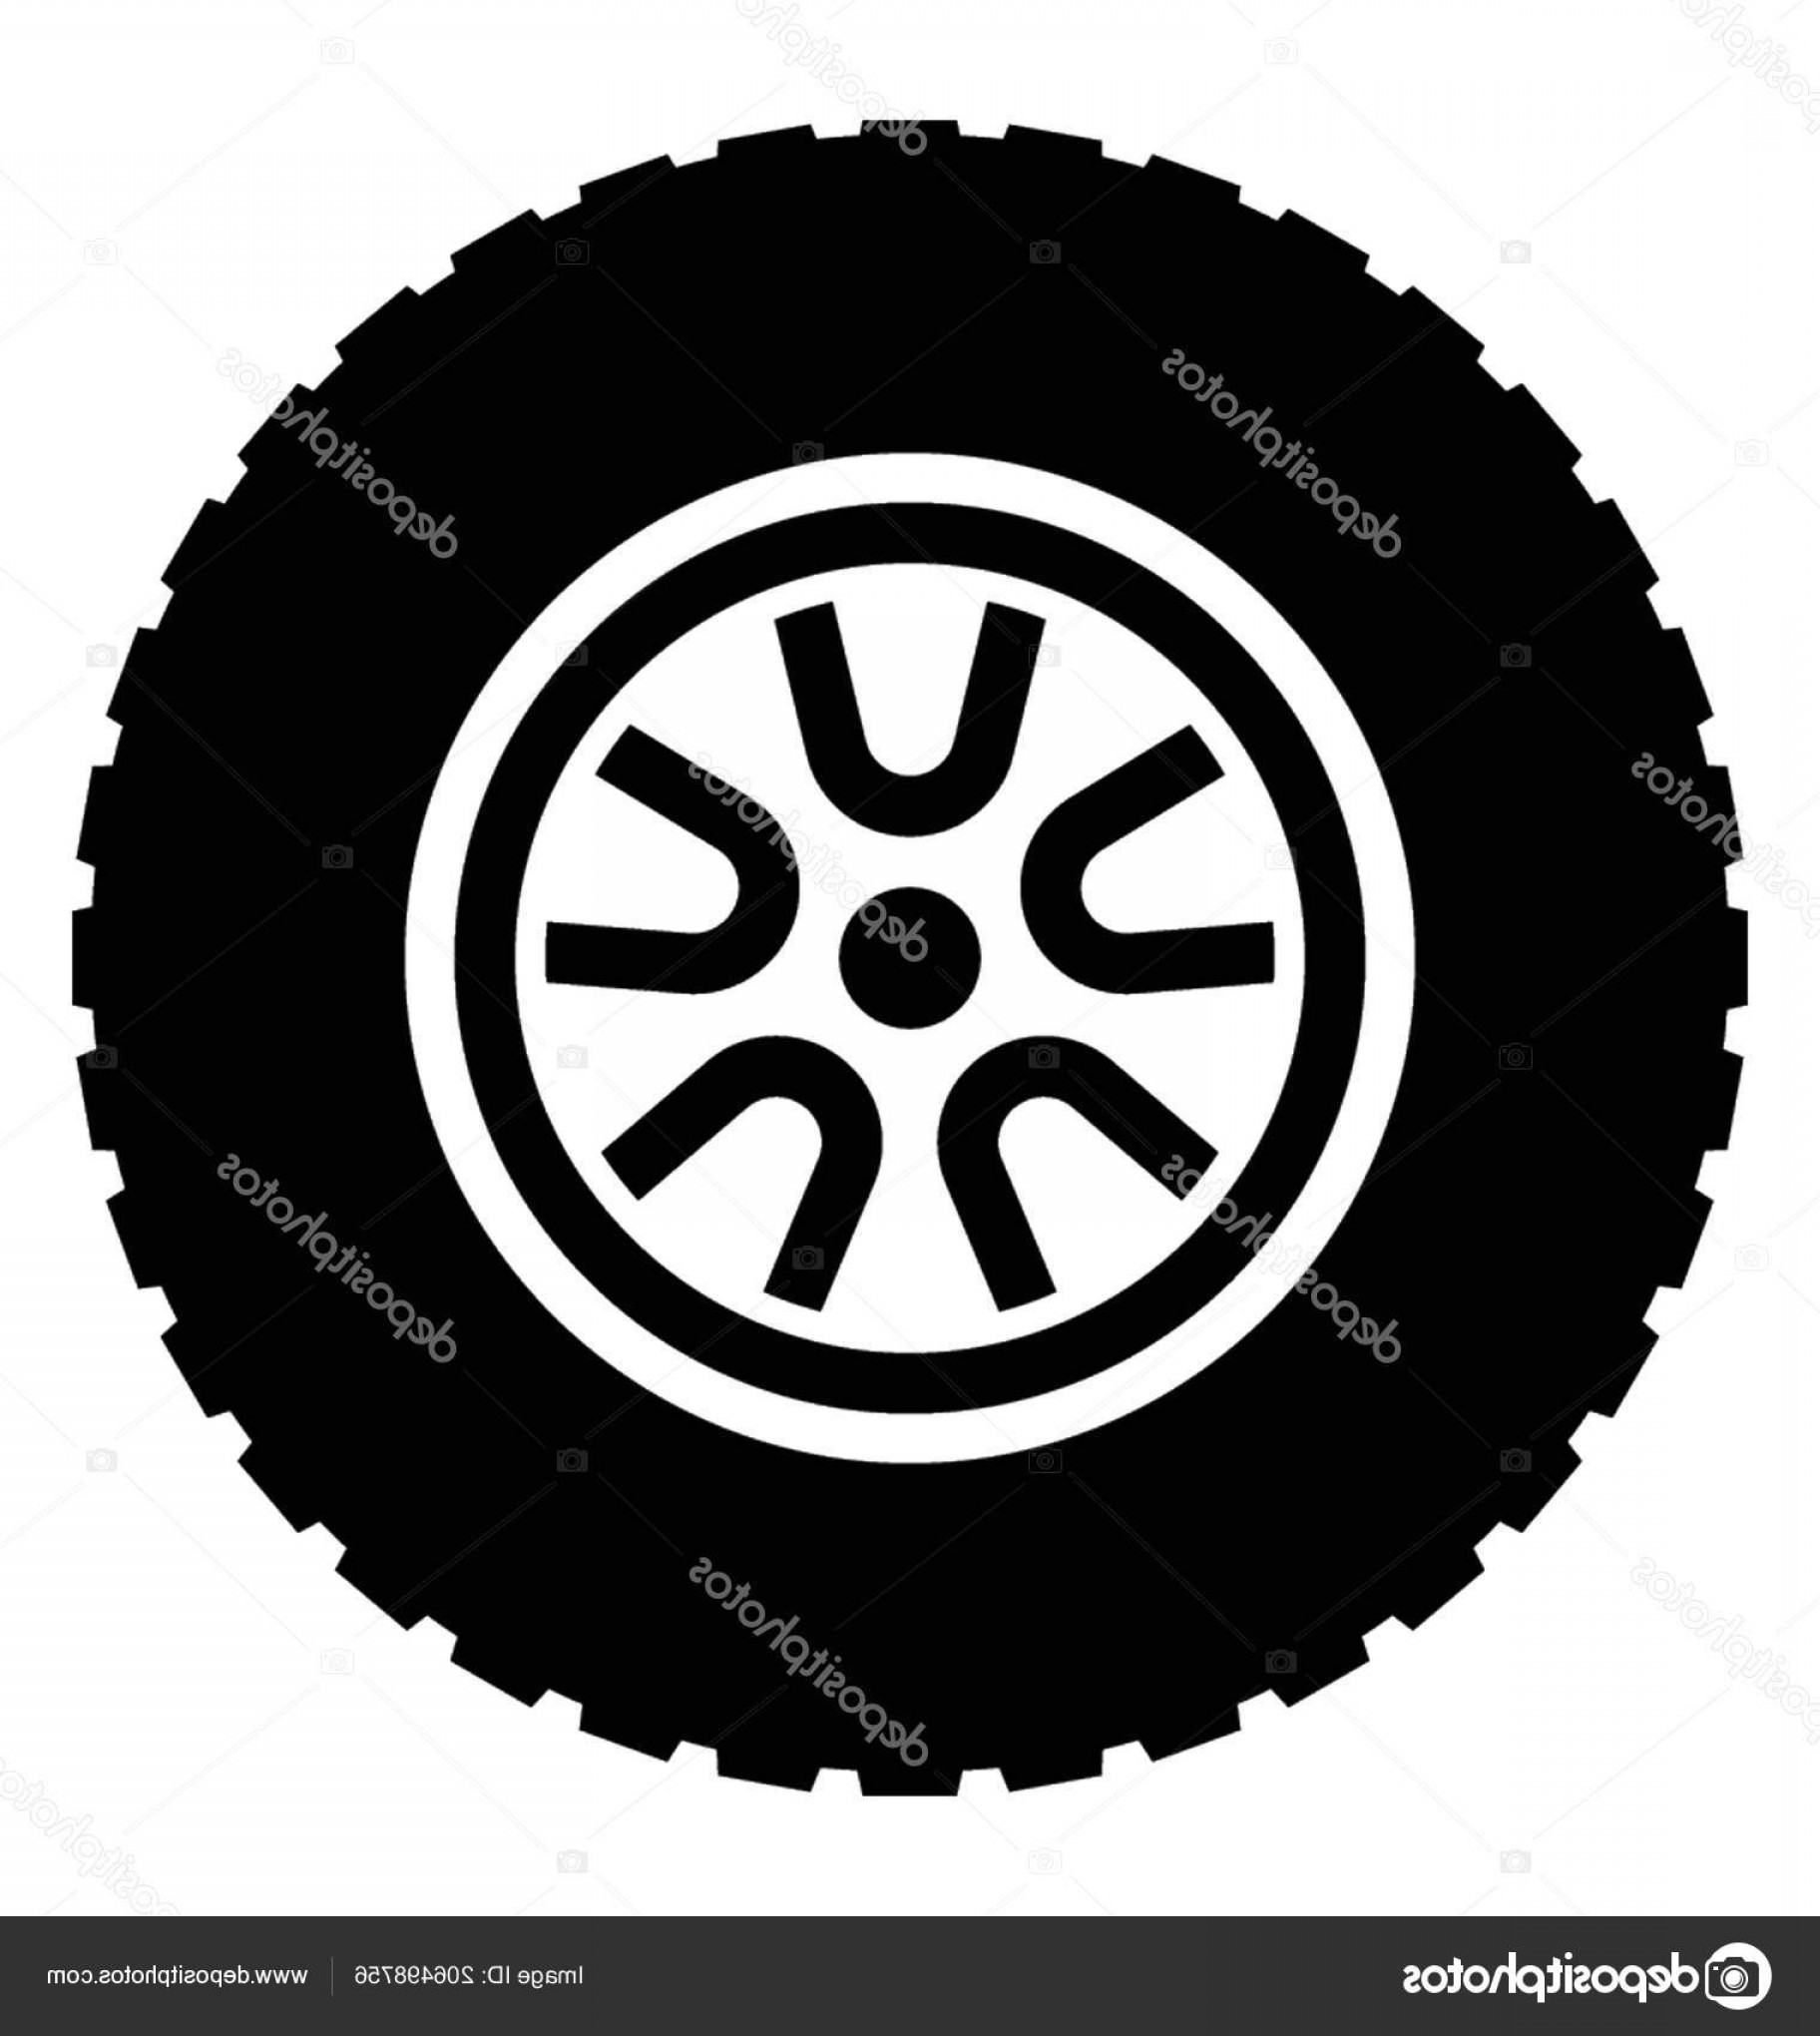 Jeep Tire Vector: Stock Illustration Big Rubber Tyre Pattrend Disk